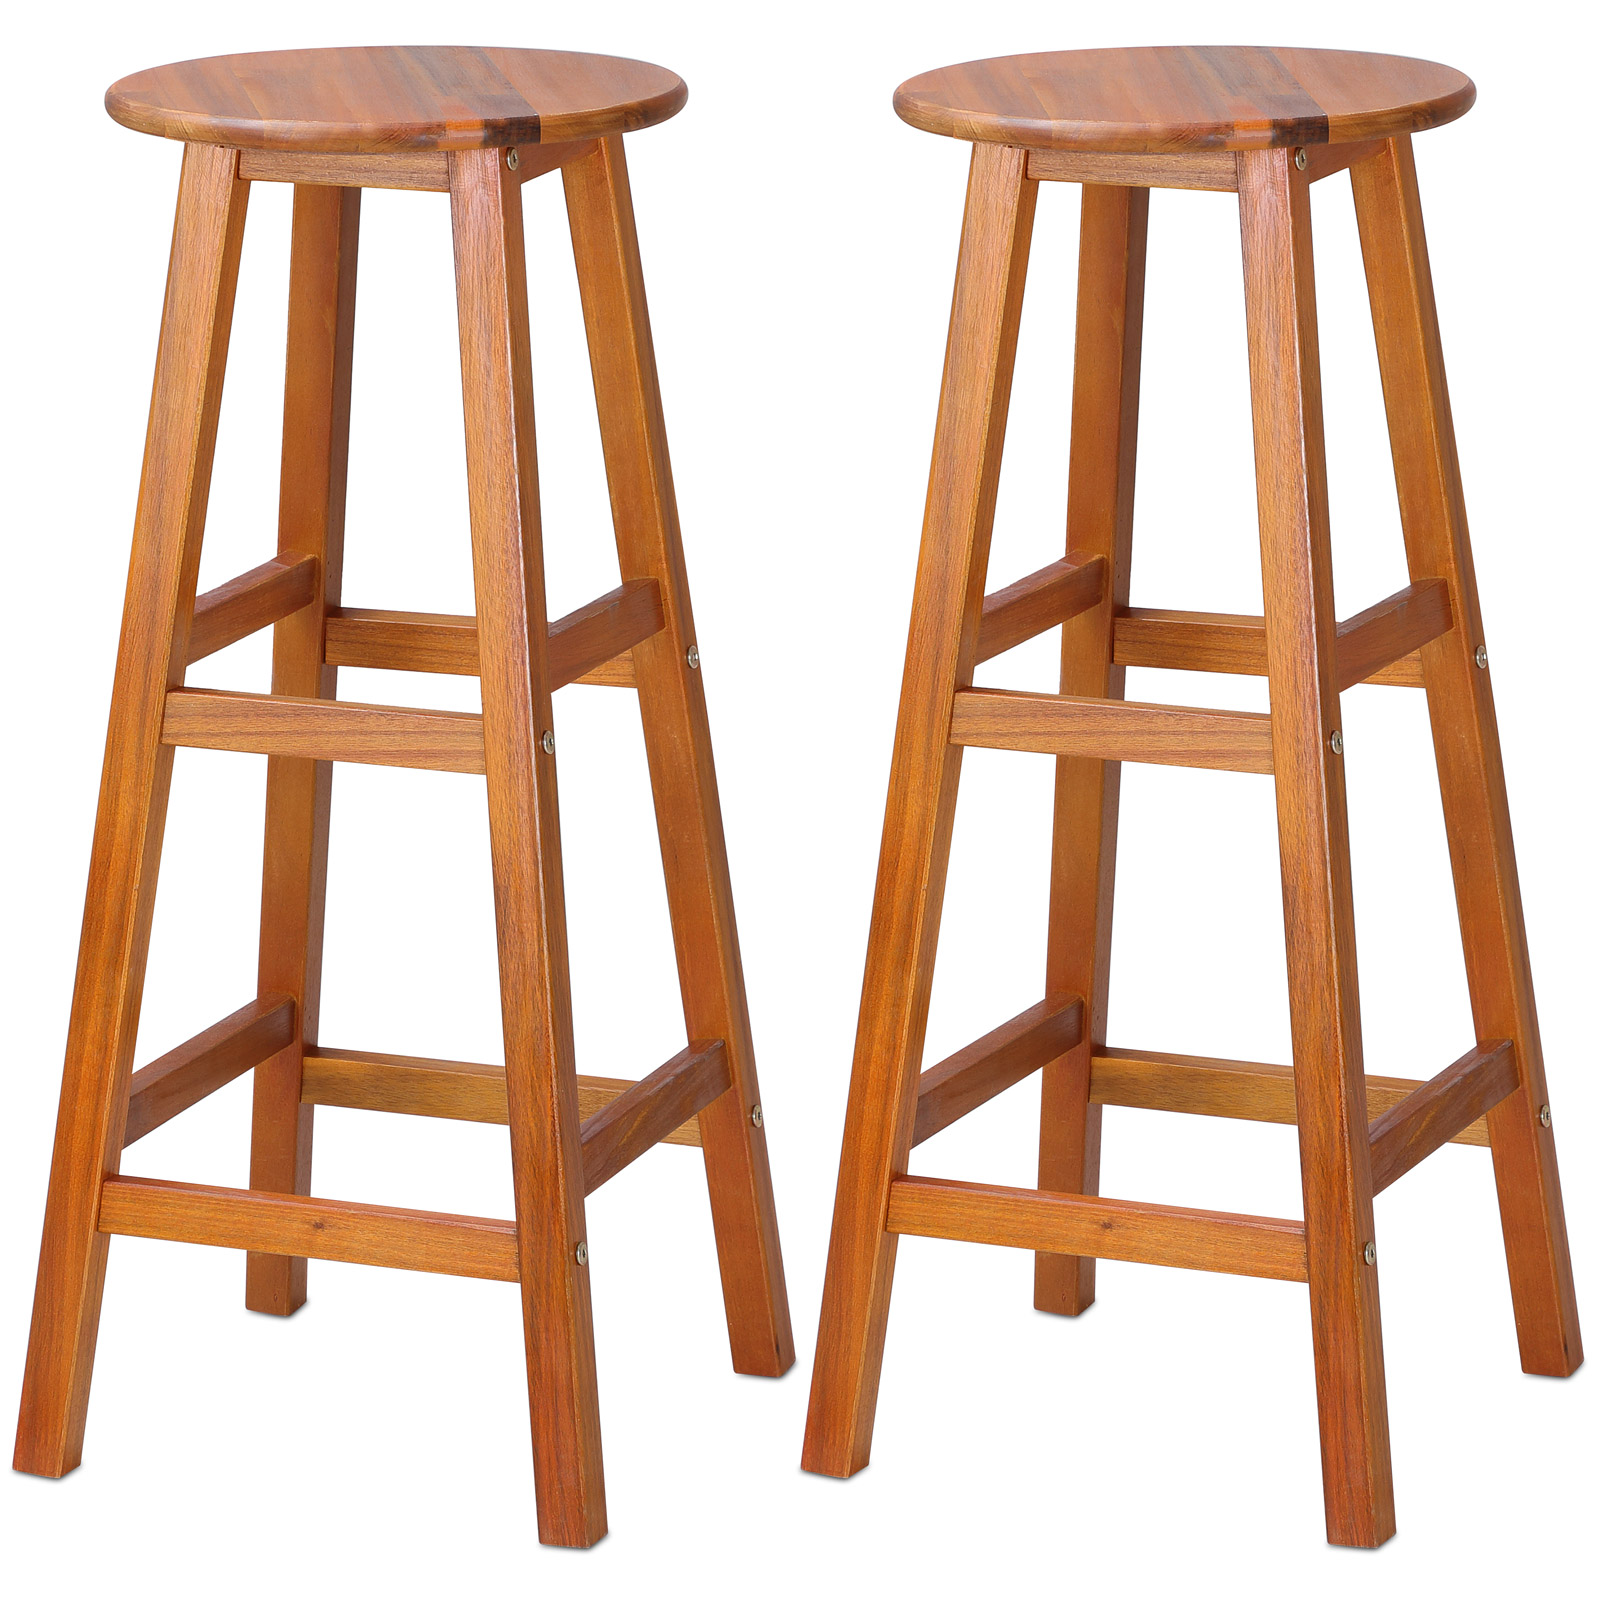 Wooden Bar Stool Set 2x Kitchen Breakfast Chair Dining